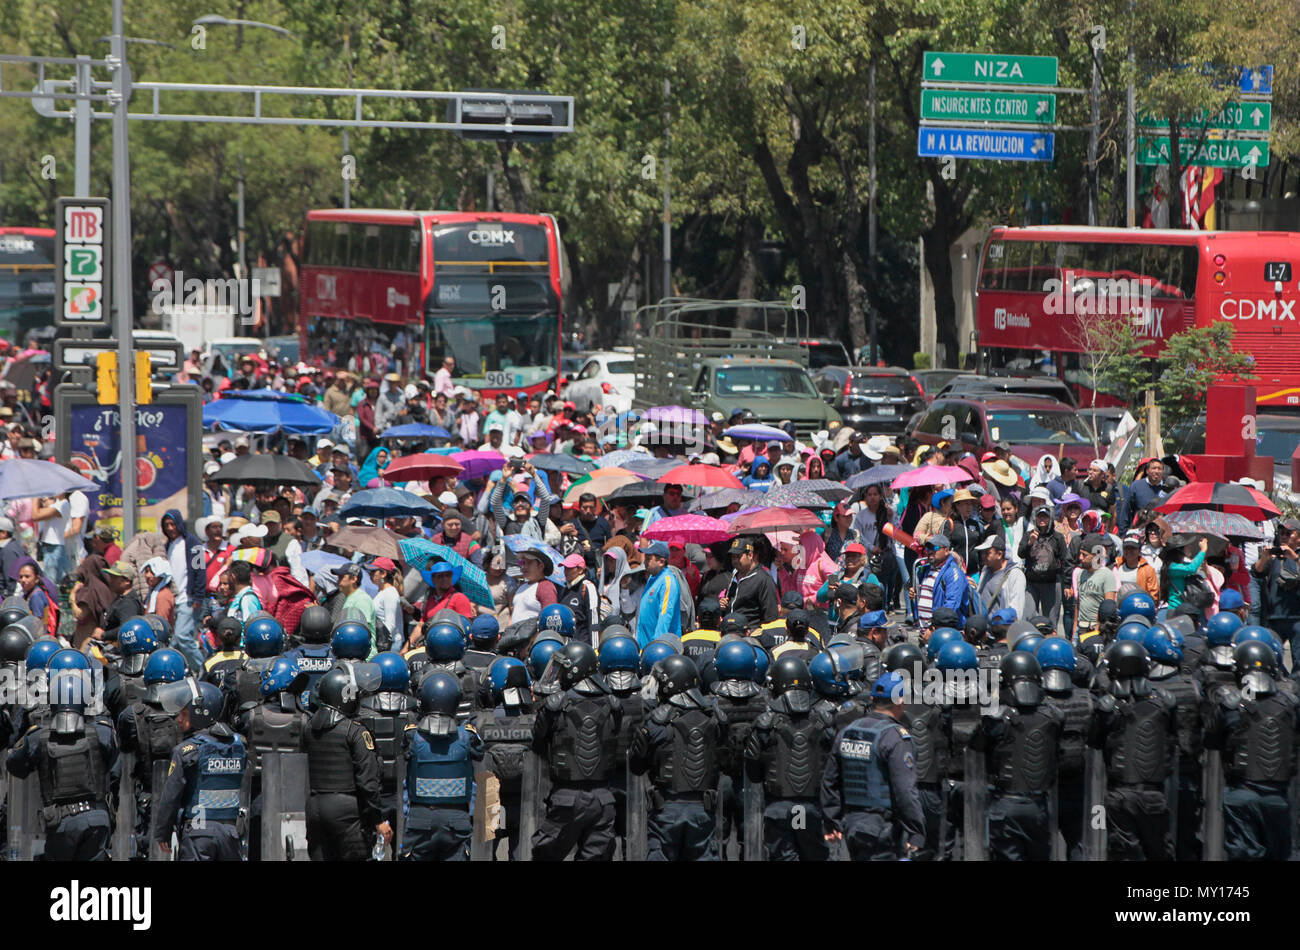 Mexico city, Mexico. 5th June, 2018. Members of the police intervene in the mobilization of hundreds of members of the National Coordination of Education Workers (CNTE), who march for the second consecutive day in Mexico City, Mexico, 05 June 2018. Thousands of teachers from several states carry out several mobilizations since Monday to pressure the Mexican government to reinstate a negotiating table on their demands. According to the Ministry of Public Education (SEP) ), 98.2% of public basic education schools operate normally. EFE/Mario Guzman Credit: EFE News Agency/Alamy Live News Stock Photo